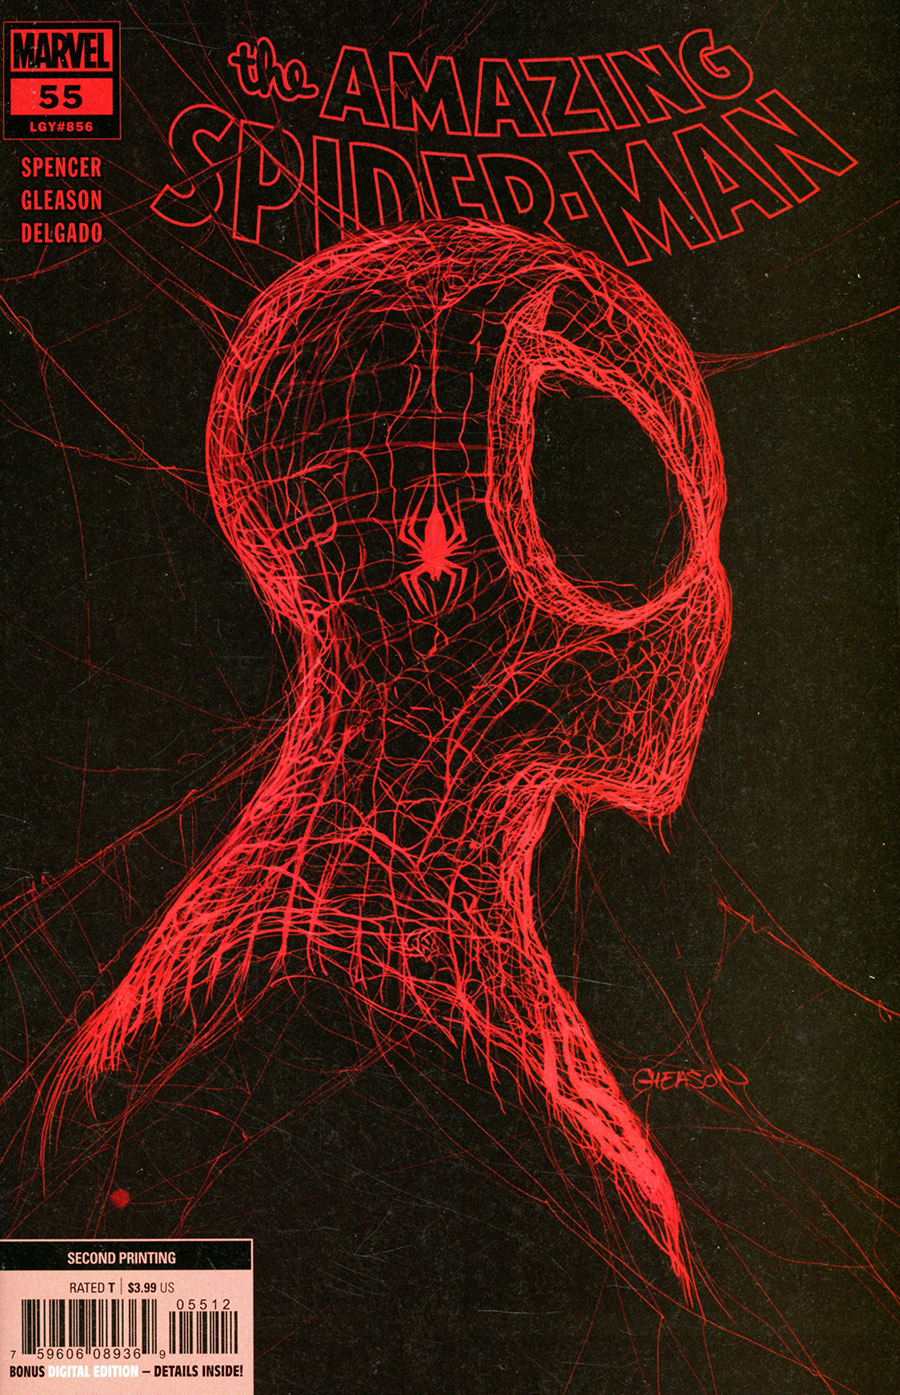 Amazing Spider-Man Vol 5 #55 Cover G 2nd Ptg Patrick Gleason Webhead Red On Black Variant Cover